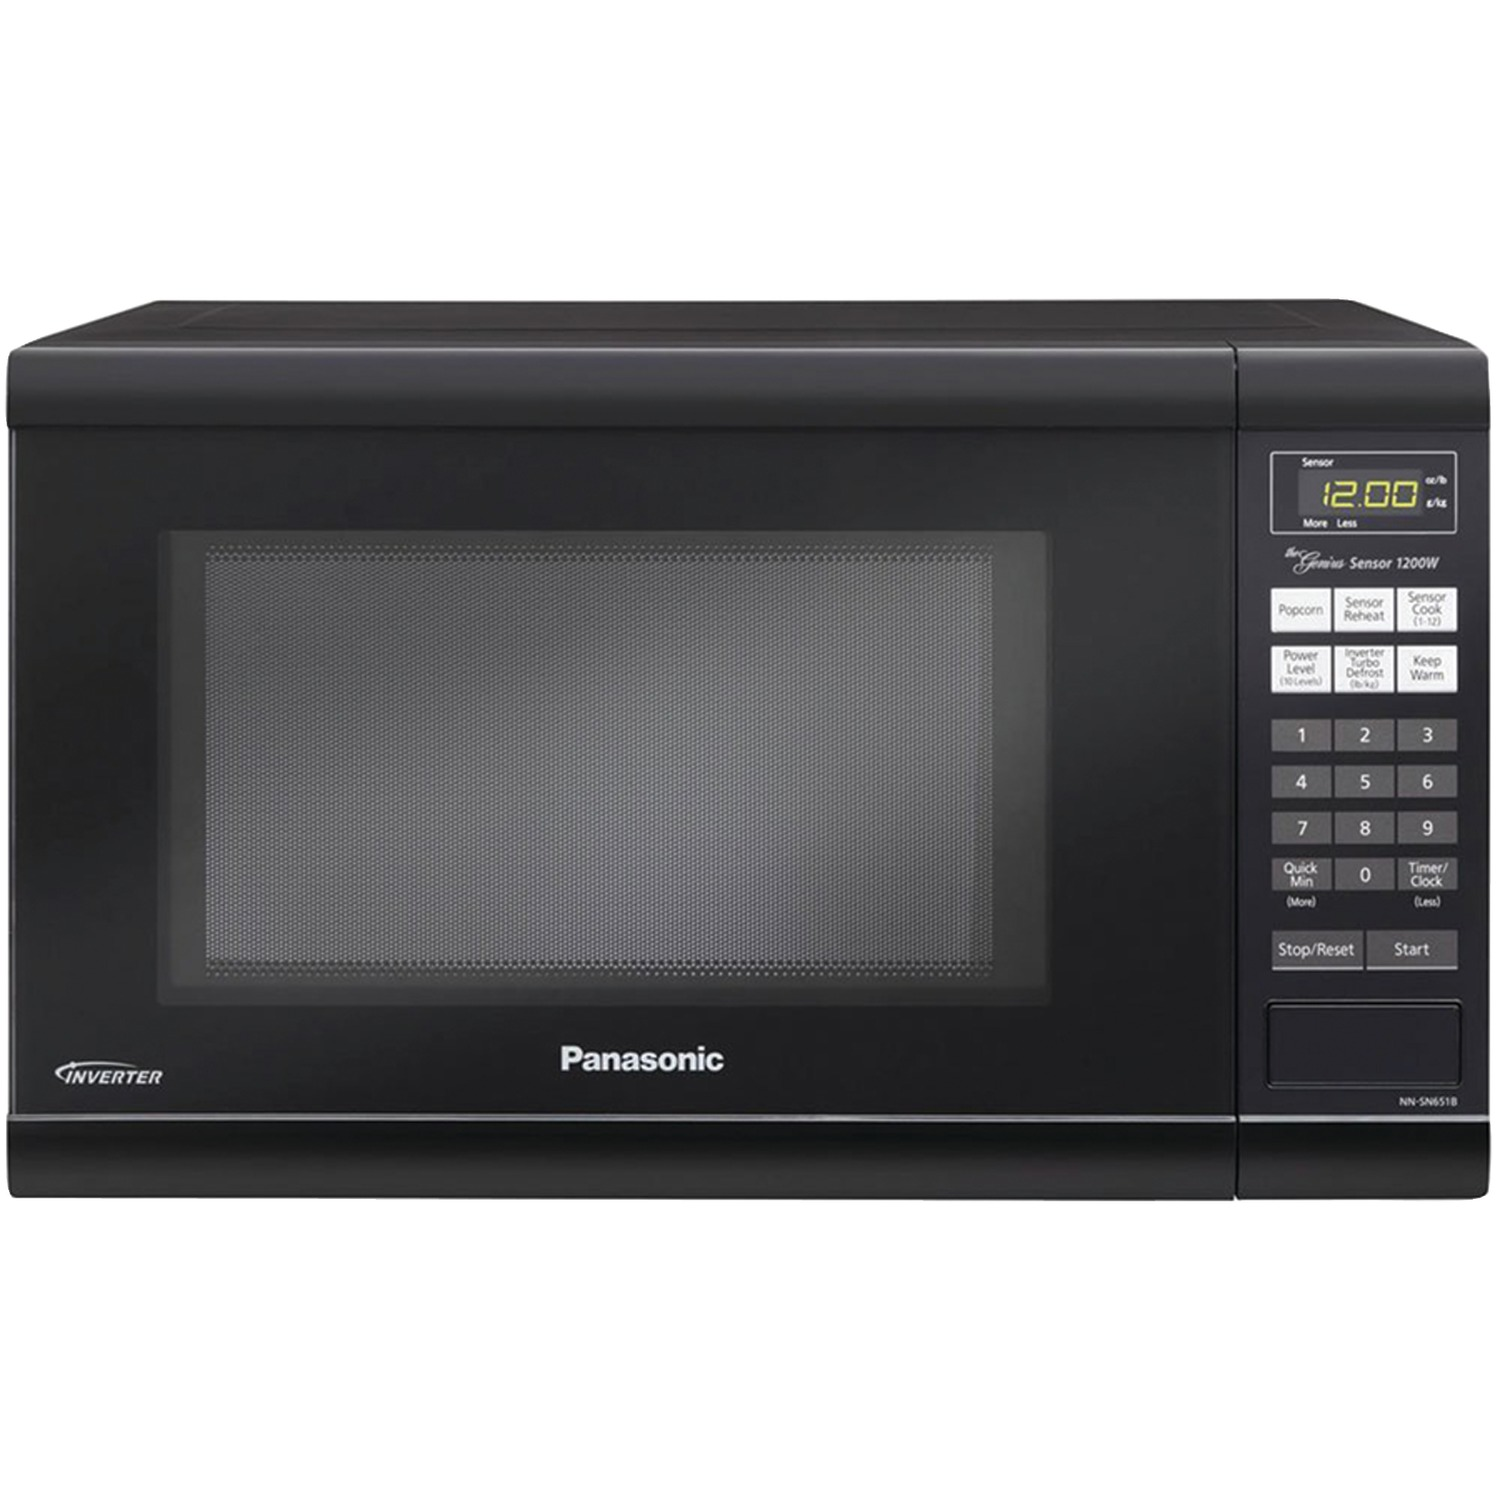 Image for Panasonic 1.2 Cu. Ft. Countertop Microwave Oven With Inverter Technology, Black from Circuit City